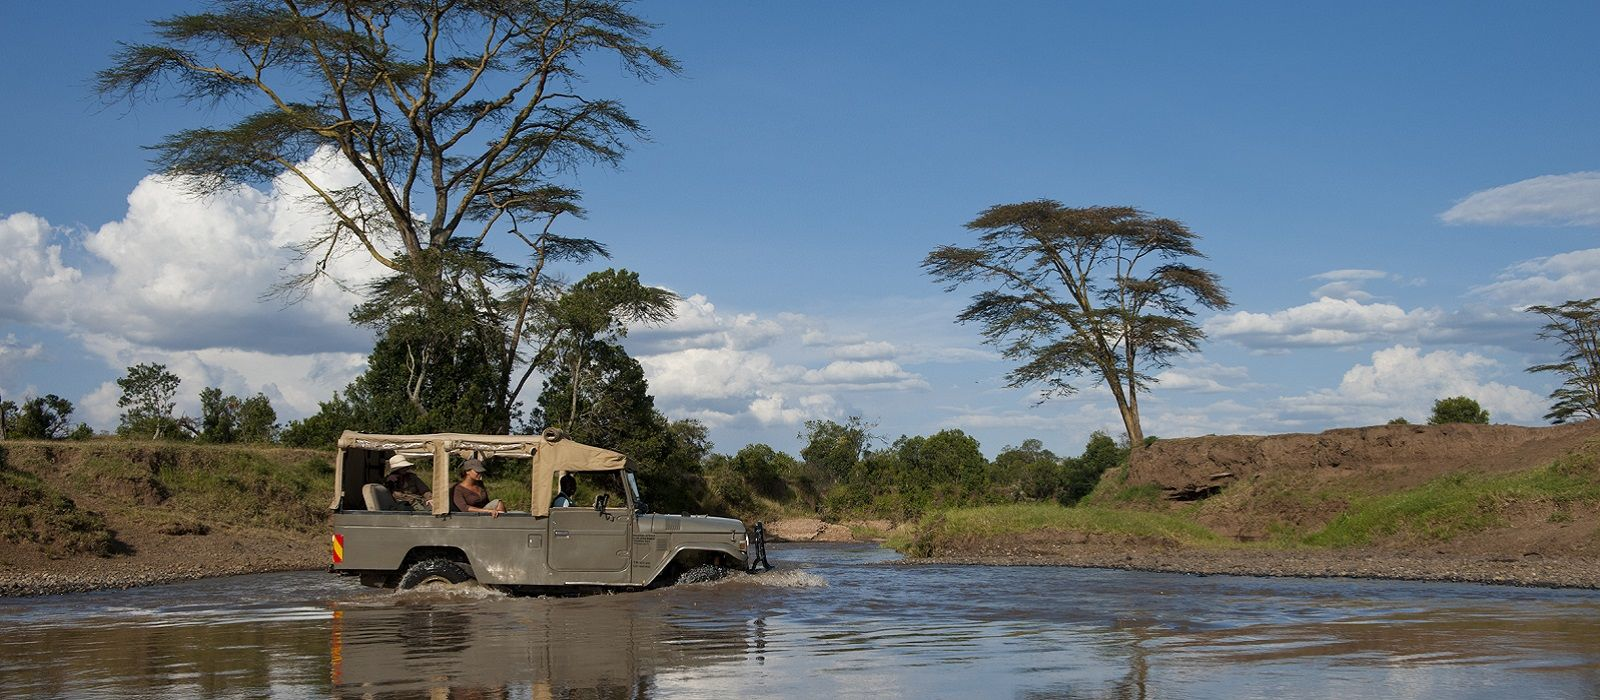 The Goal - Africa to Brazil Enchanting Travels-Kenya Tours-Laikipia-Ol Pejeta Bush Camp-river